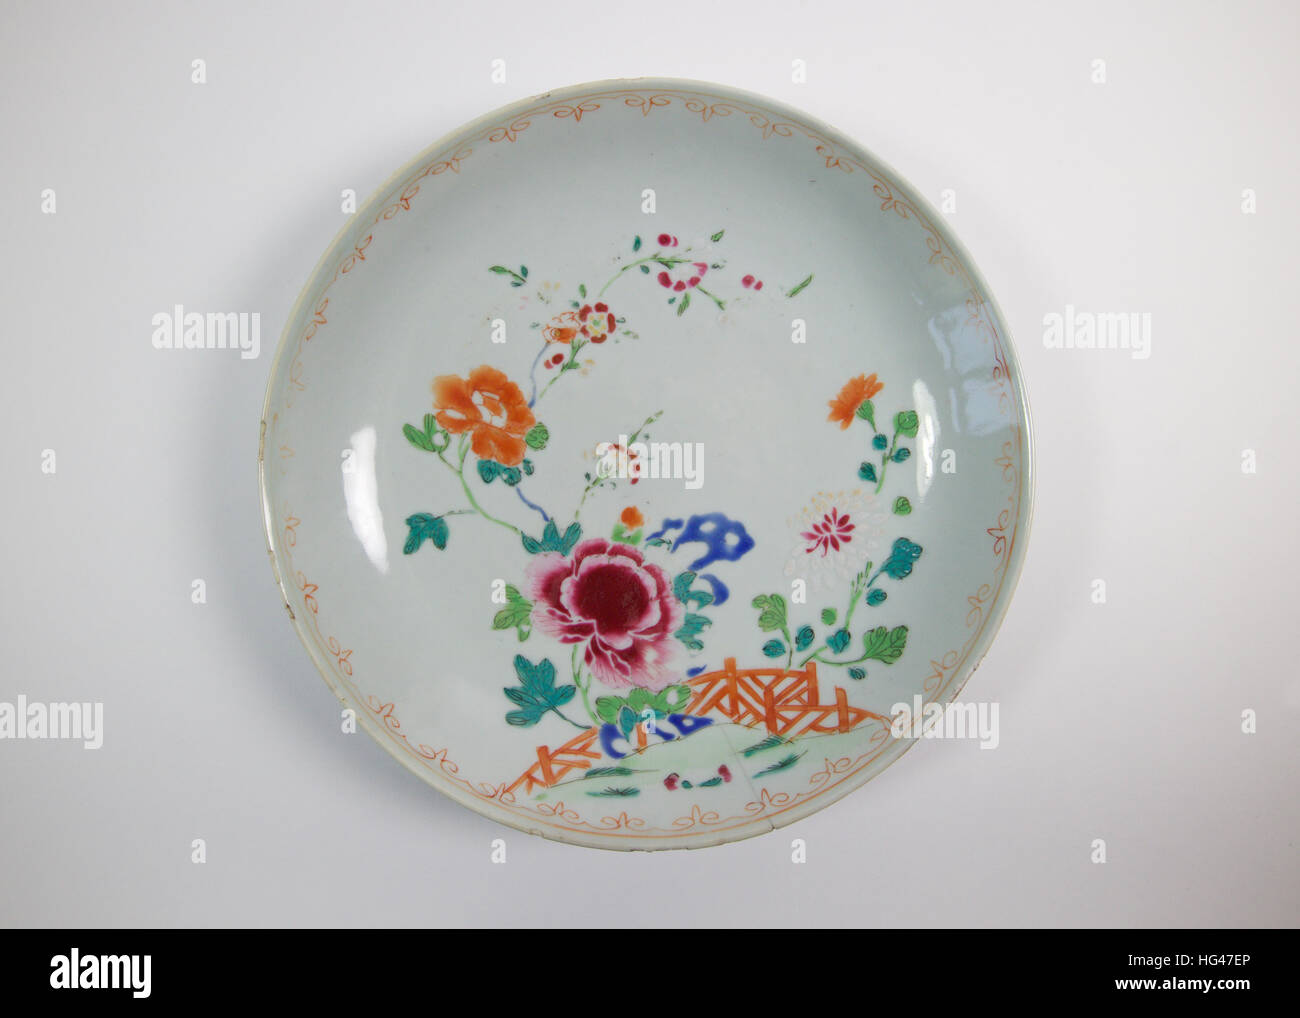 Antique Chinese famille rose porcelain bowl painted with pink and